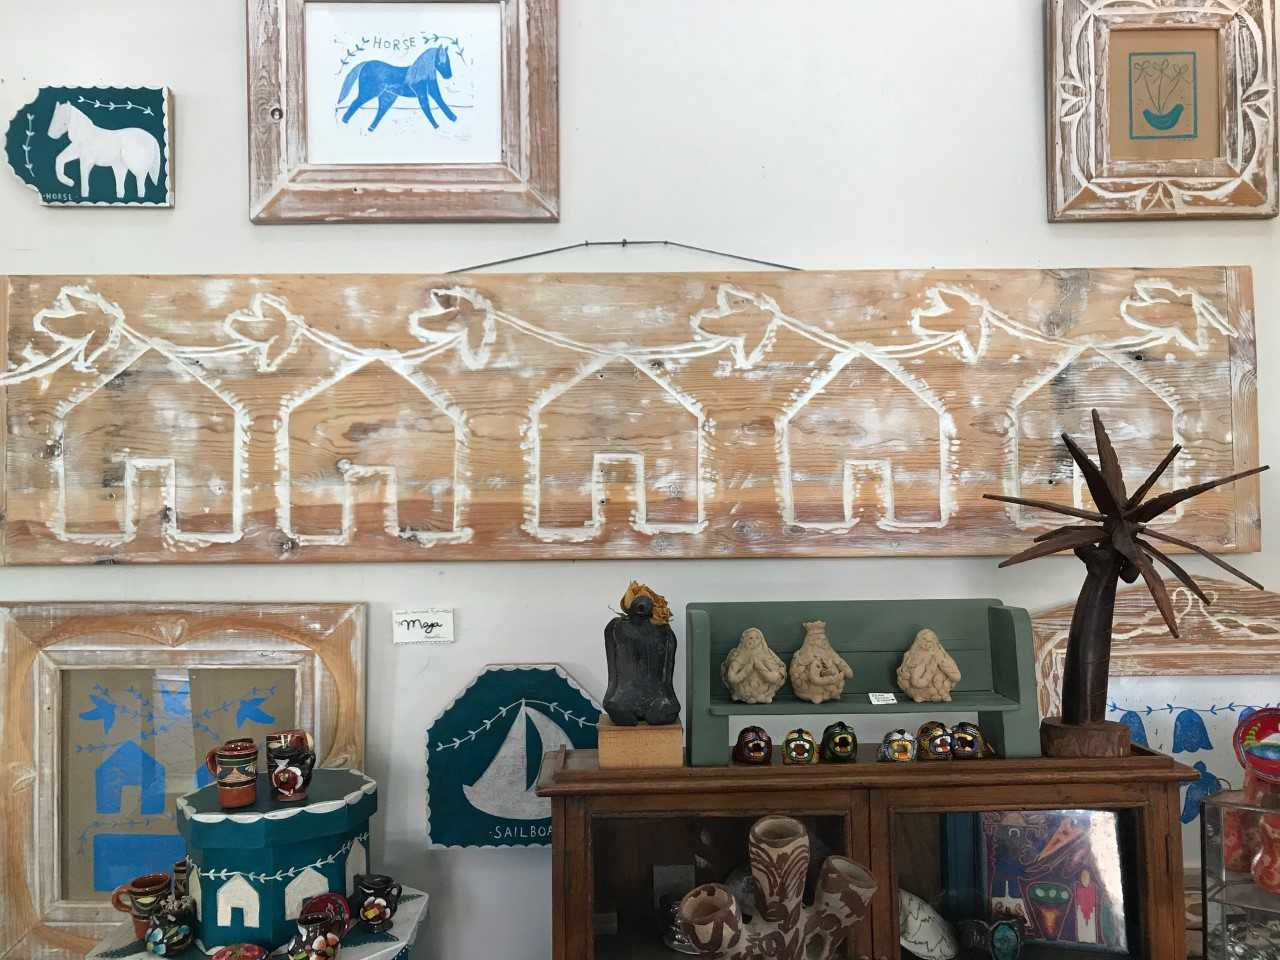 In Home Decorations Brighten Up Your Home With Tucson Decor From These 5 Local Spots